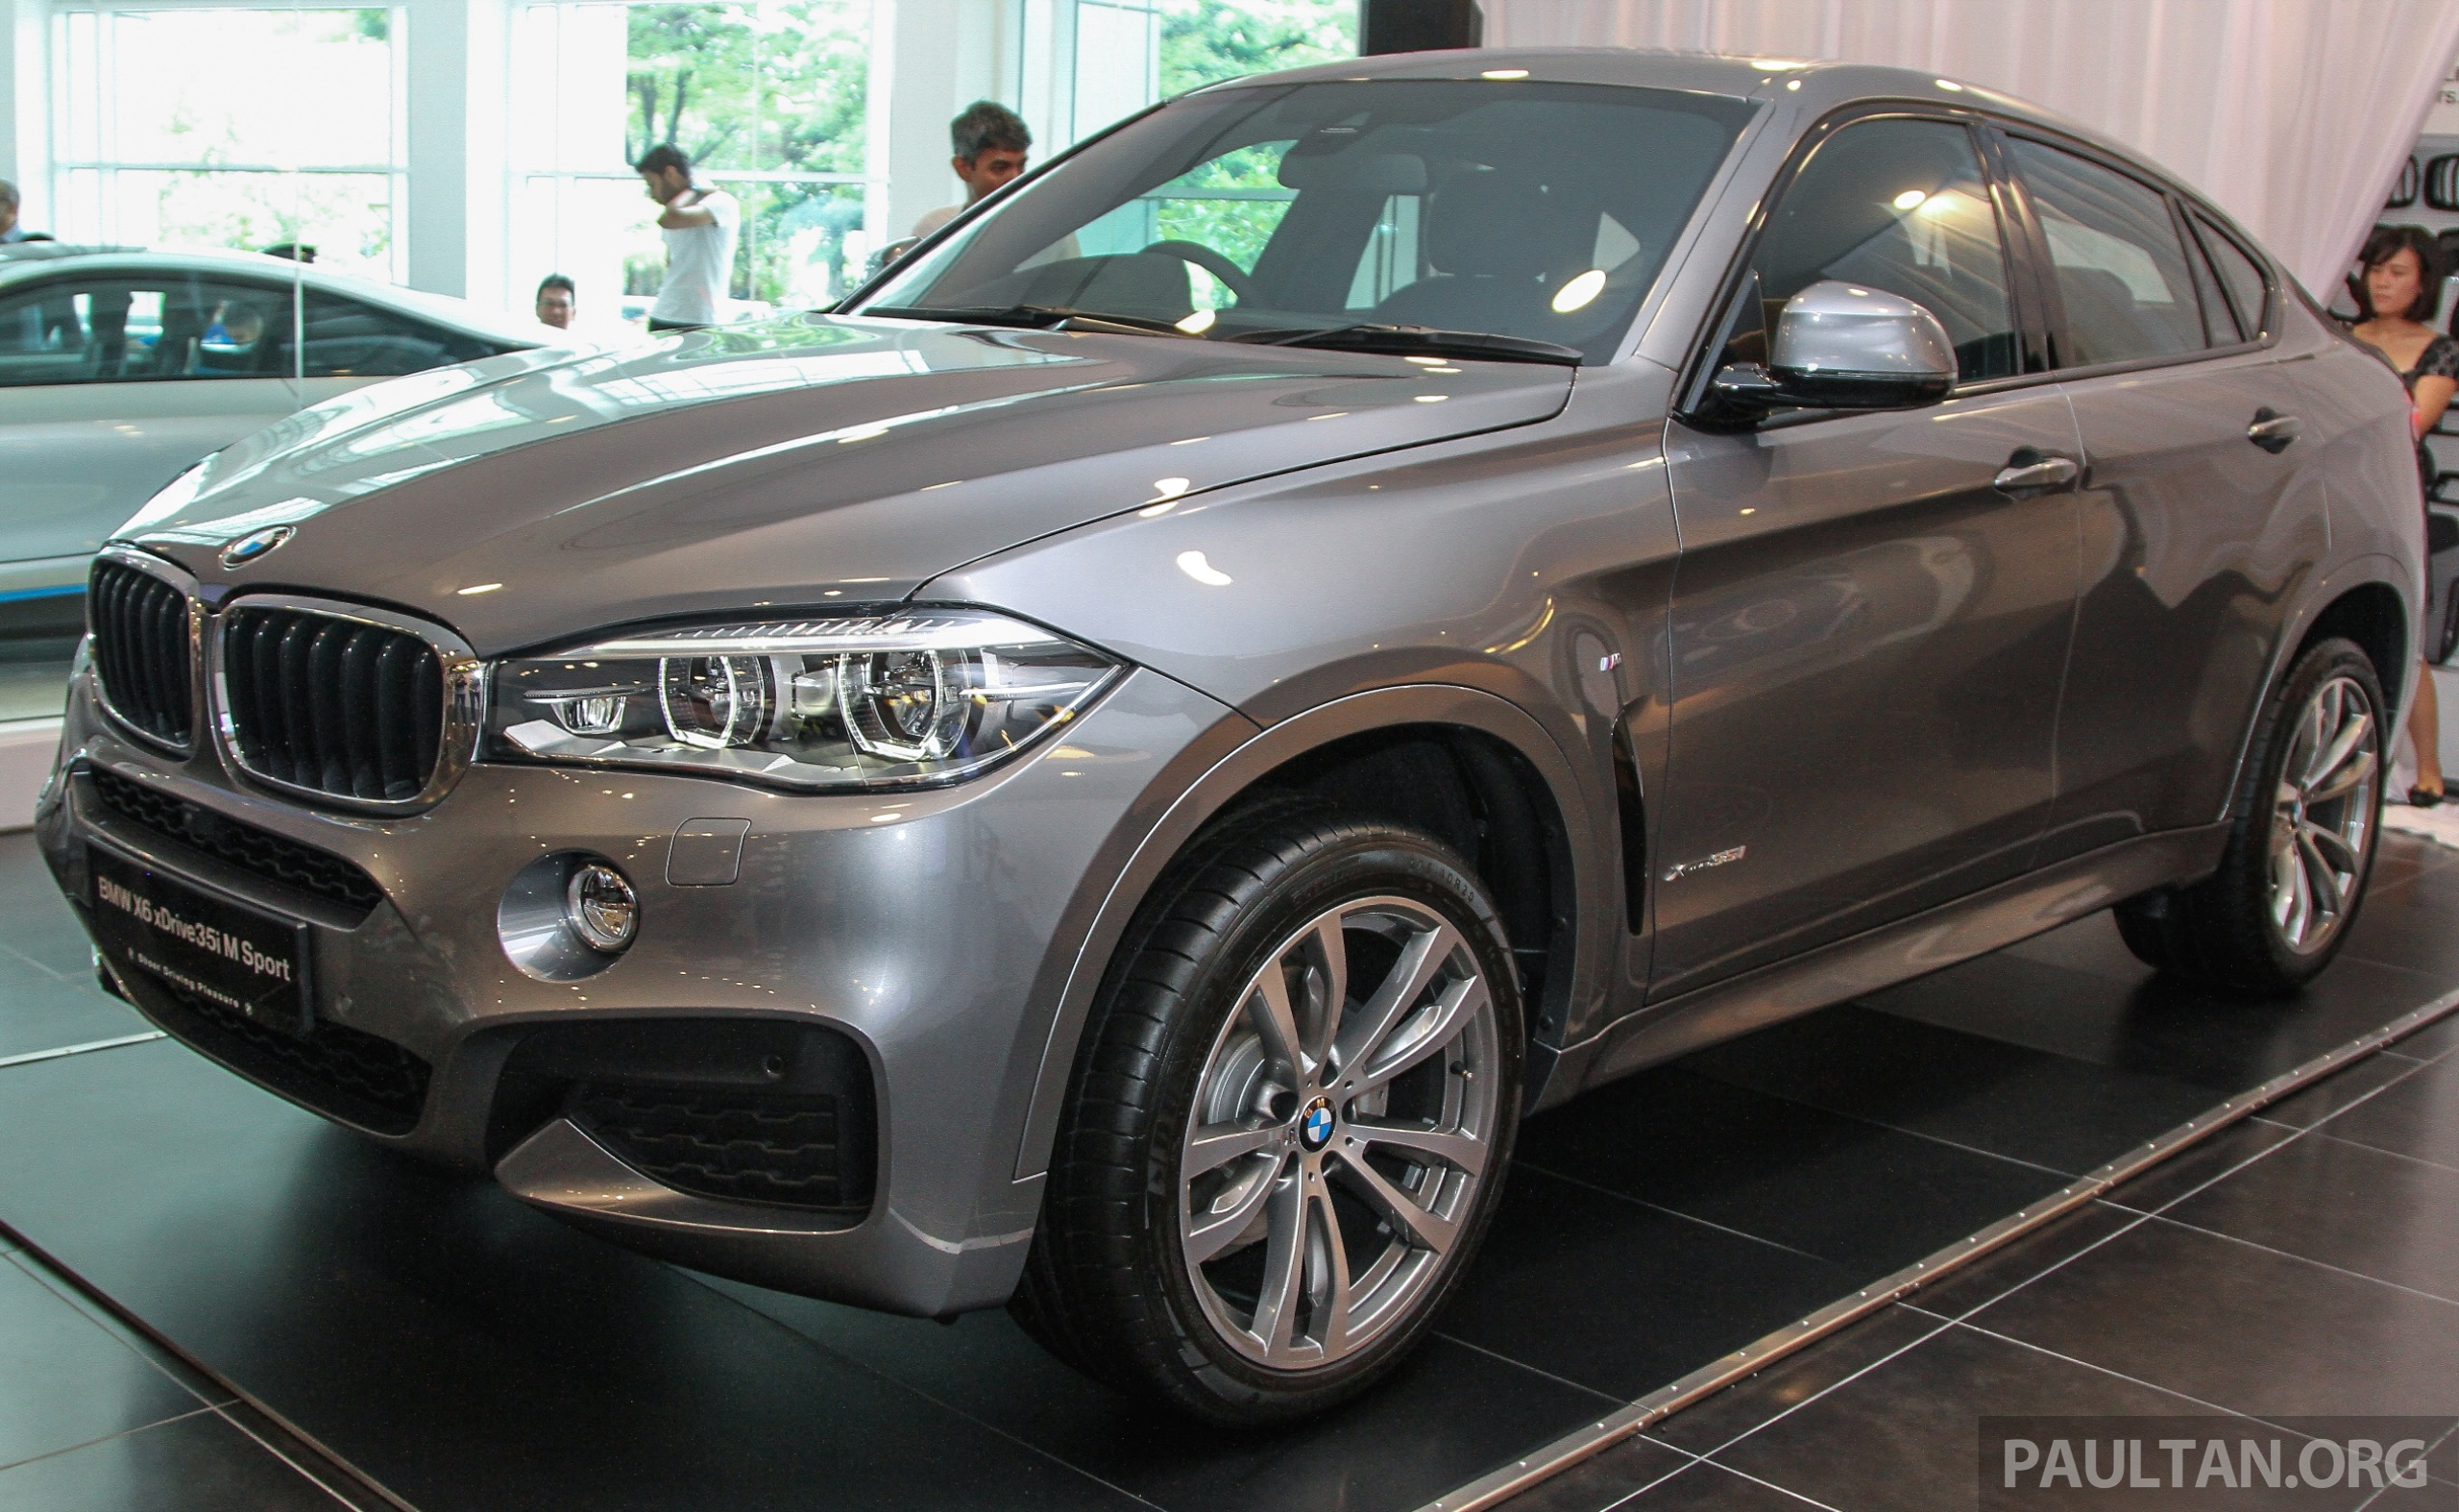 Bmw X6 Xdrive35i Ckd Launched In M Sia Rm667k Paul Tan Image 377816